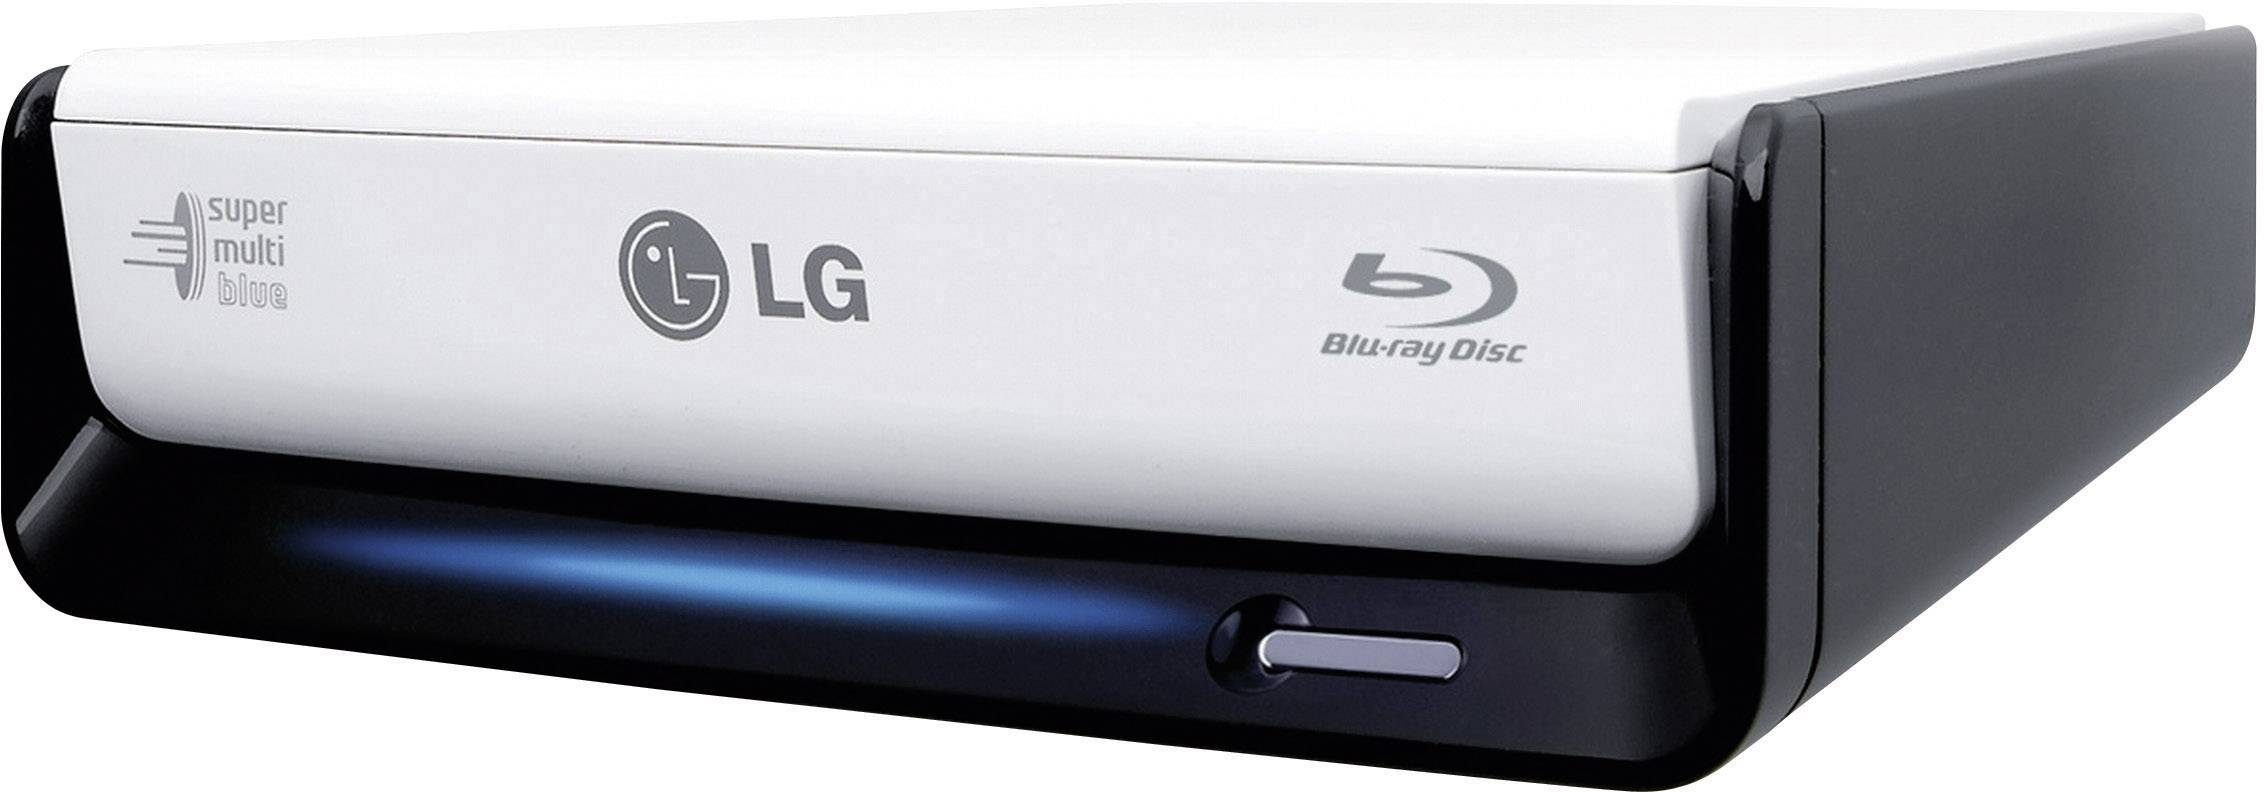 LG BE12LU30 Blu-ray Drive Update